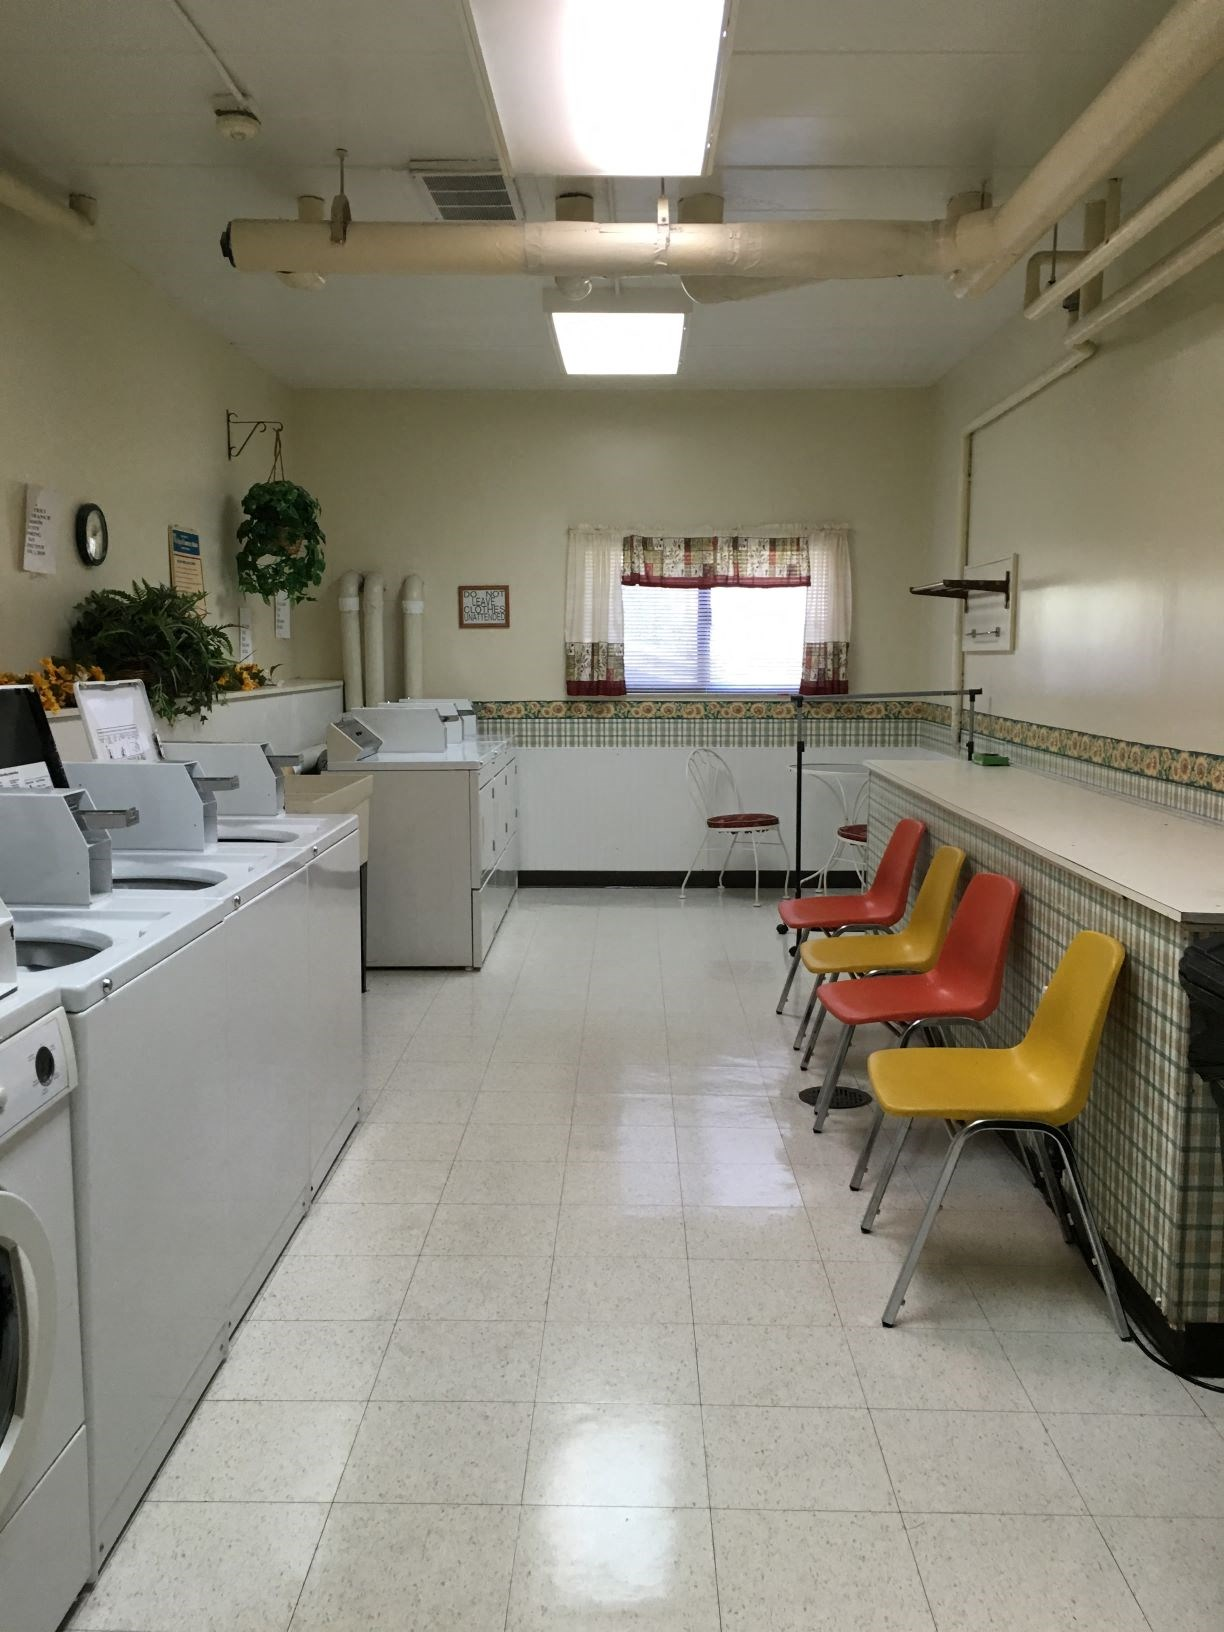 Laundry Room at Bridgeport Manor Bridgeport, West Virginia